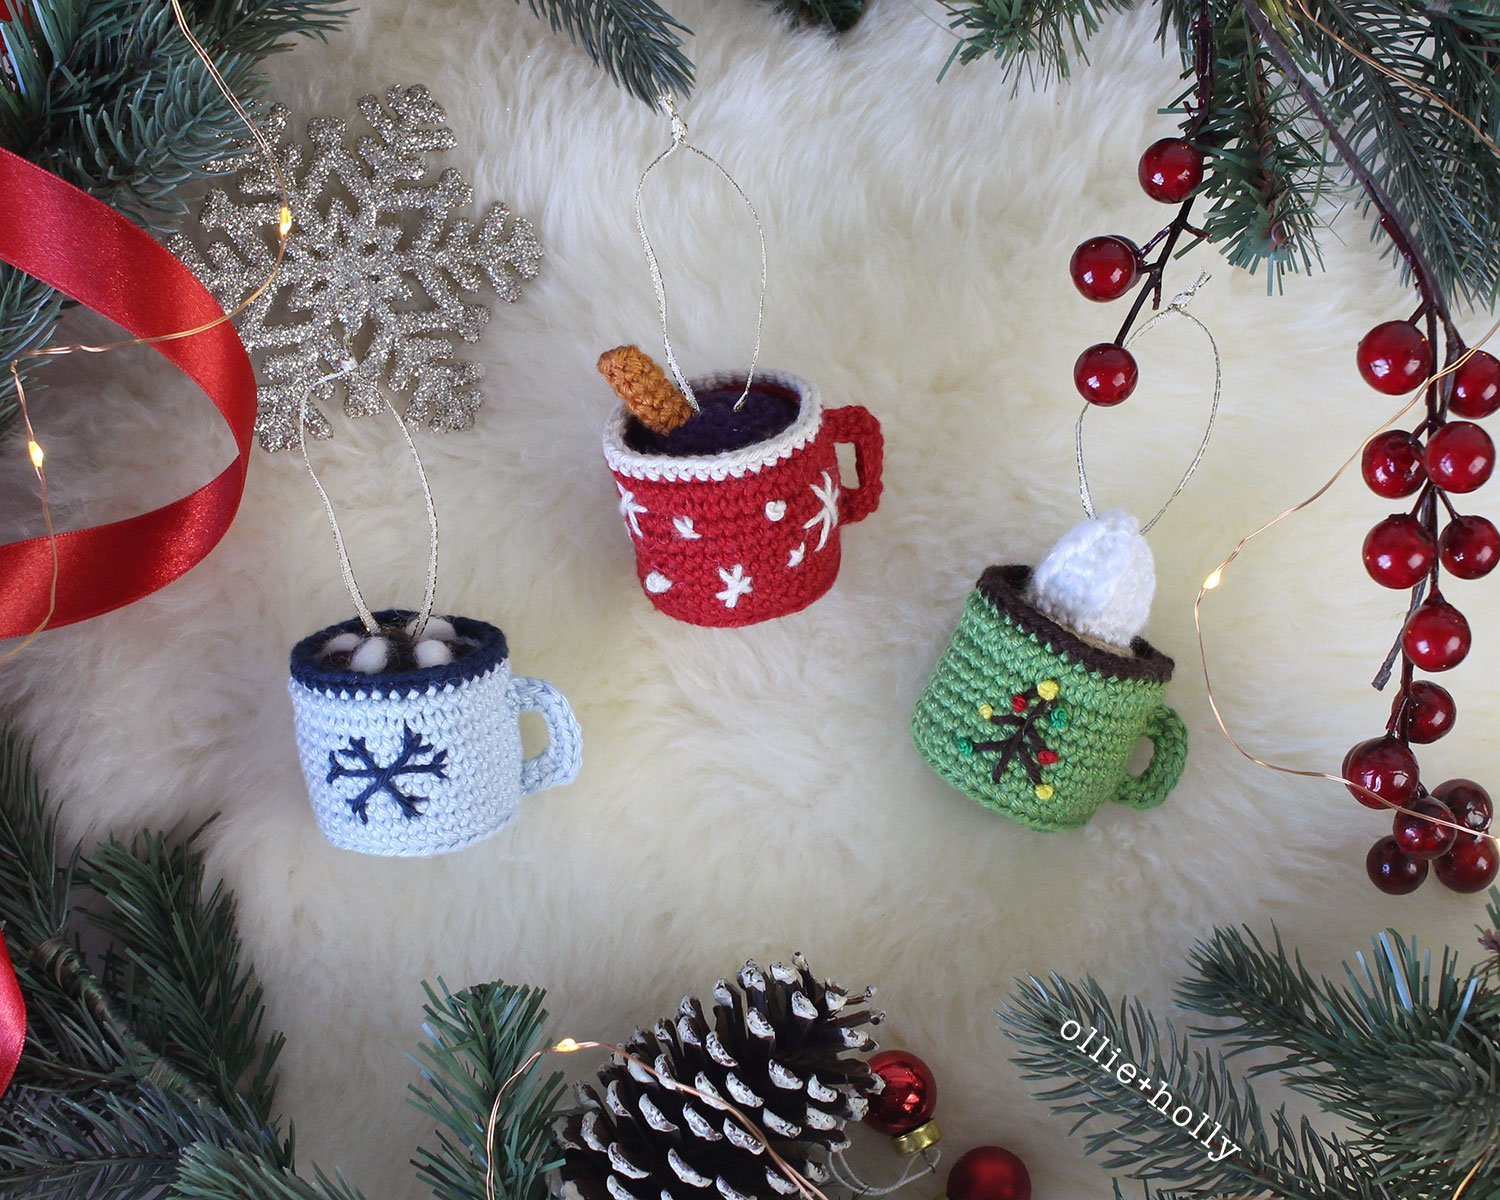 Free Hot Chocolate Cocoa Mug Amigurumi Christmas Ornament Crochet Pattern Top